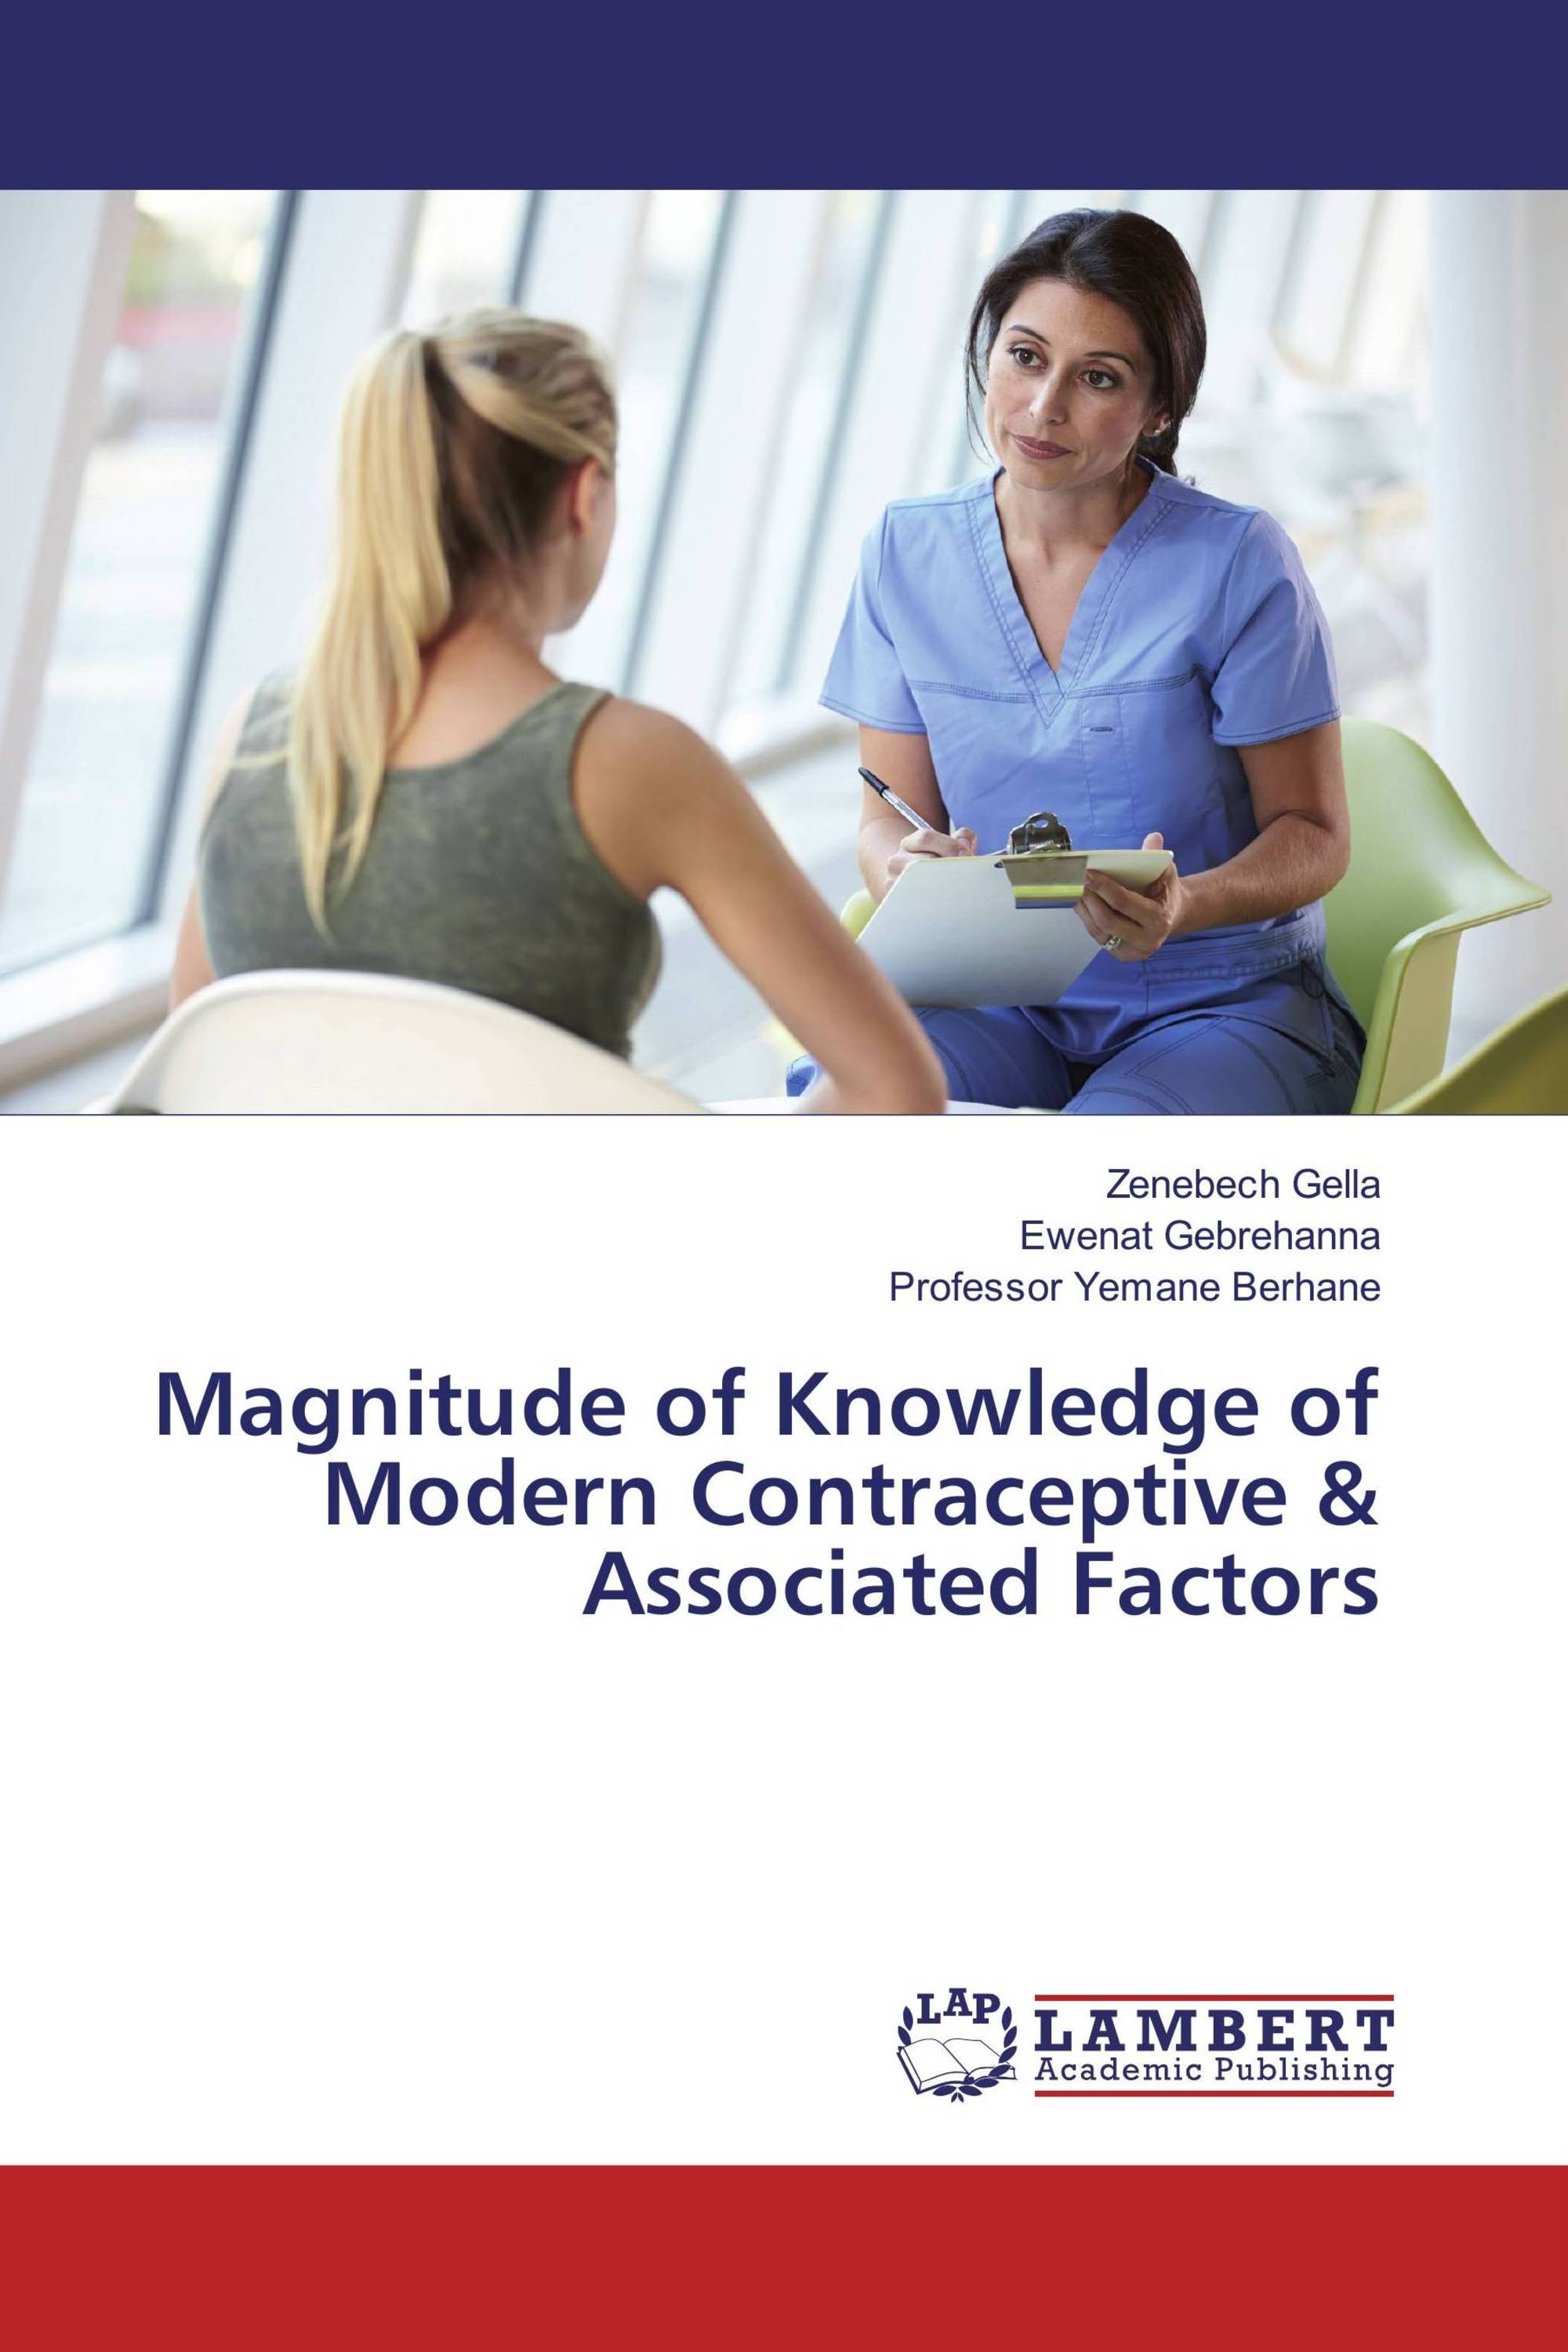 Magnitude of Knowledge of Modern Contraceptive & Associated Factors